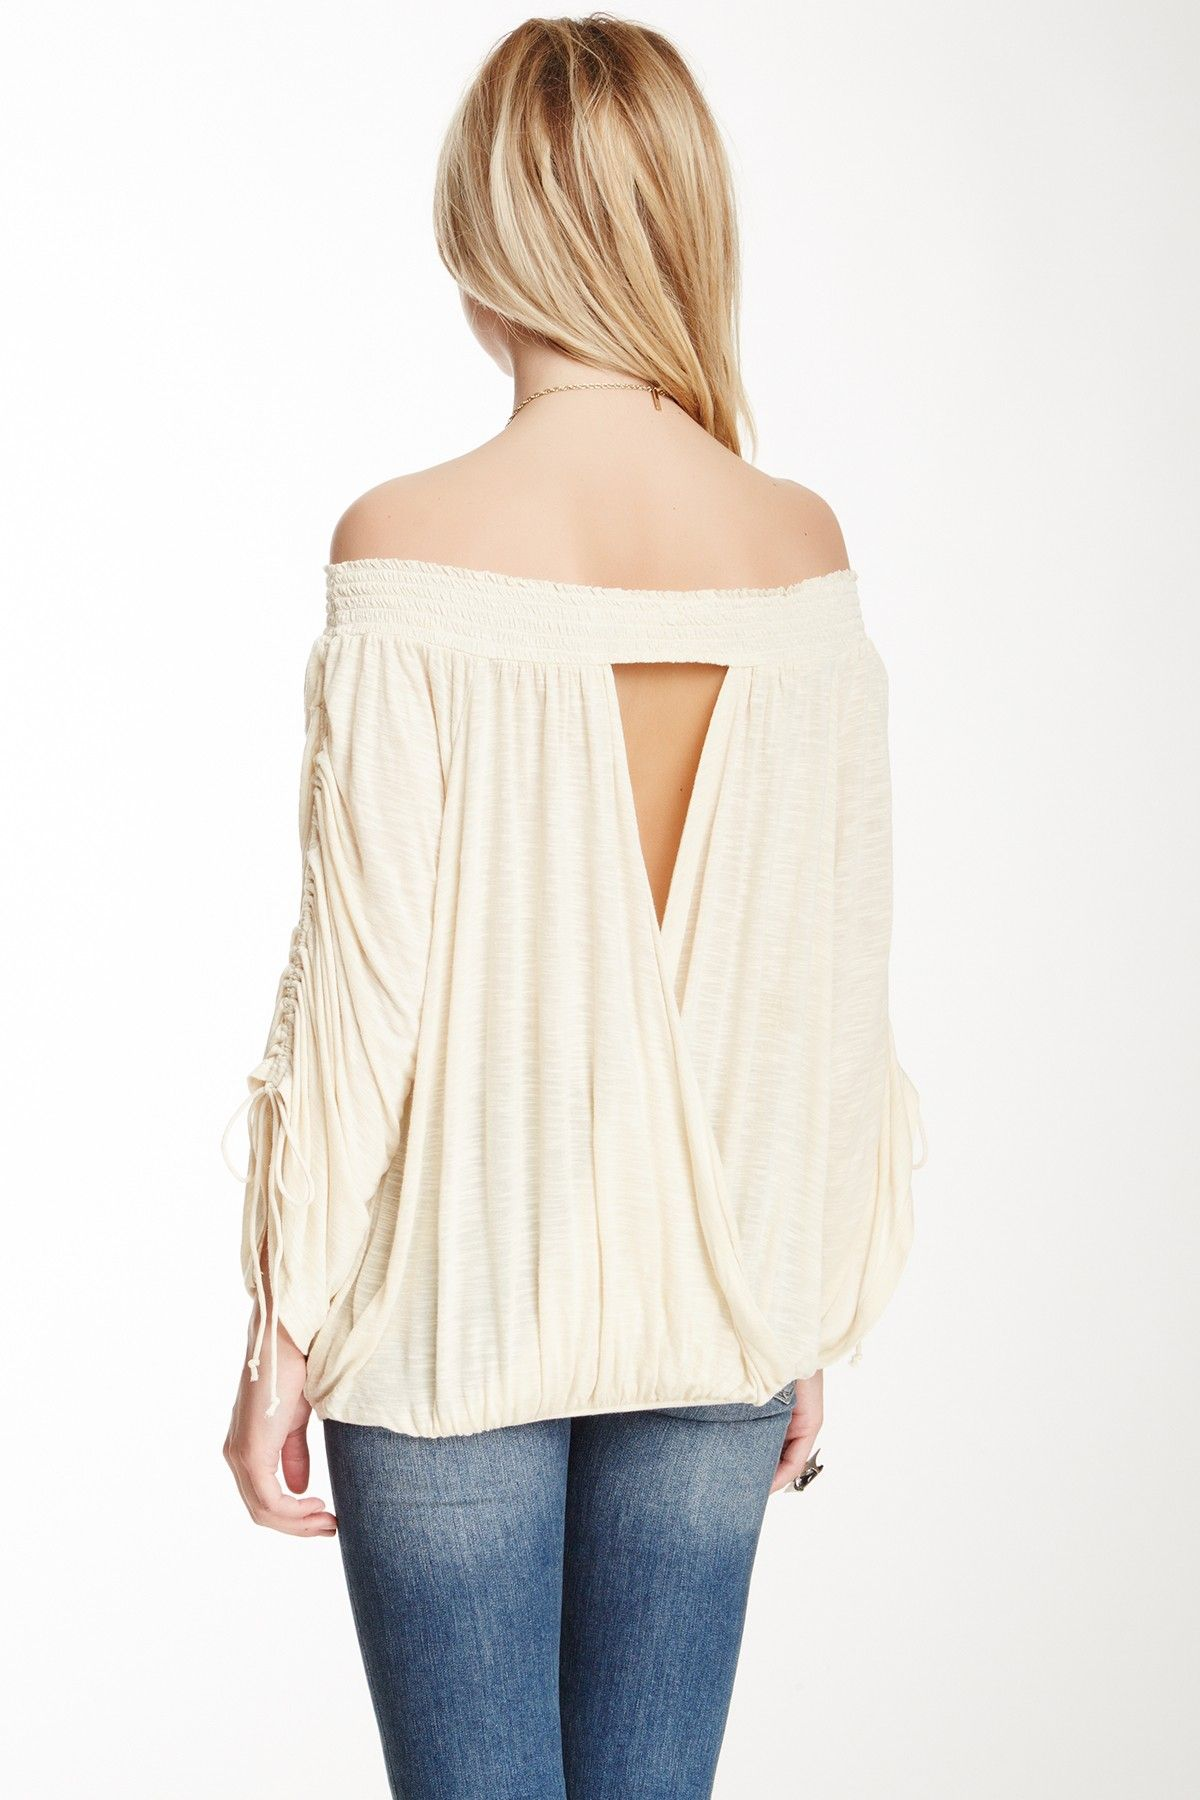 Banded Bottom Blouse Jewelry Dreams Pinterest Casual Chic